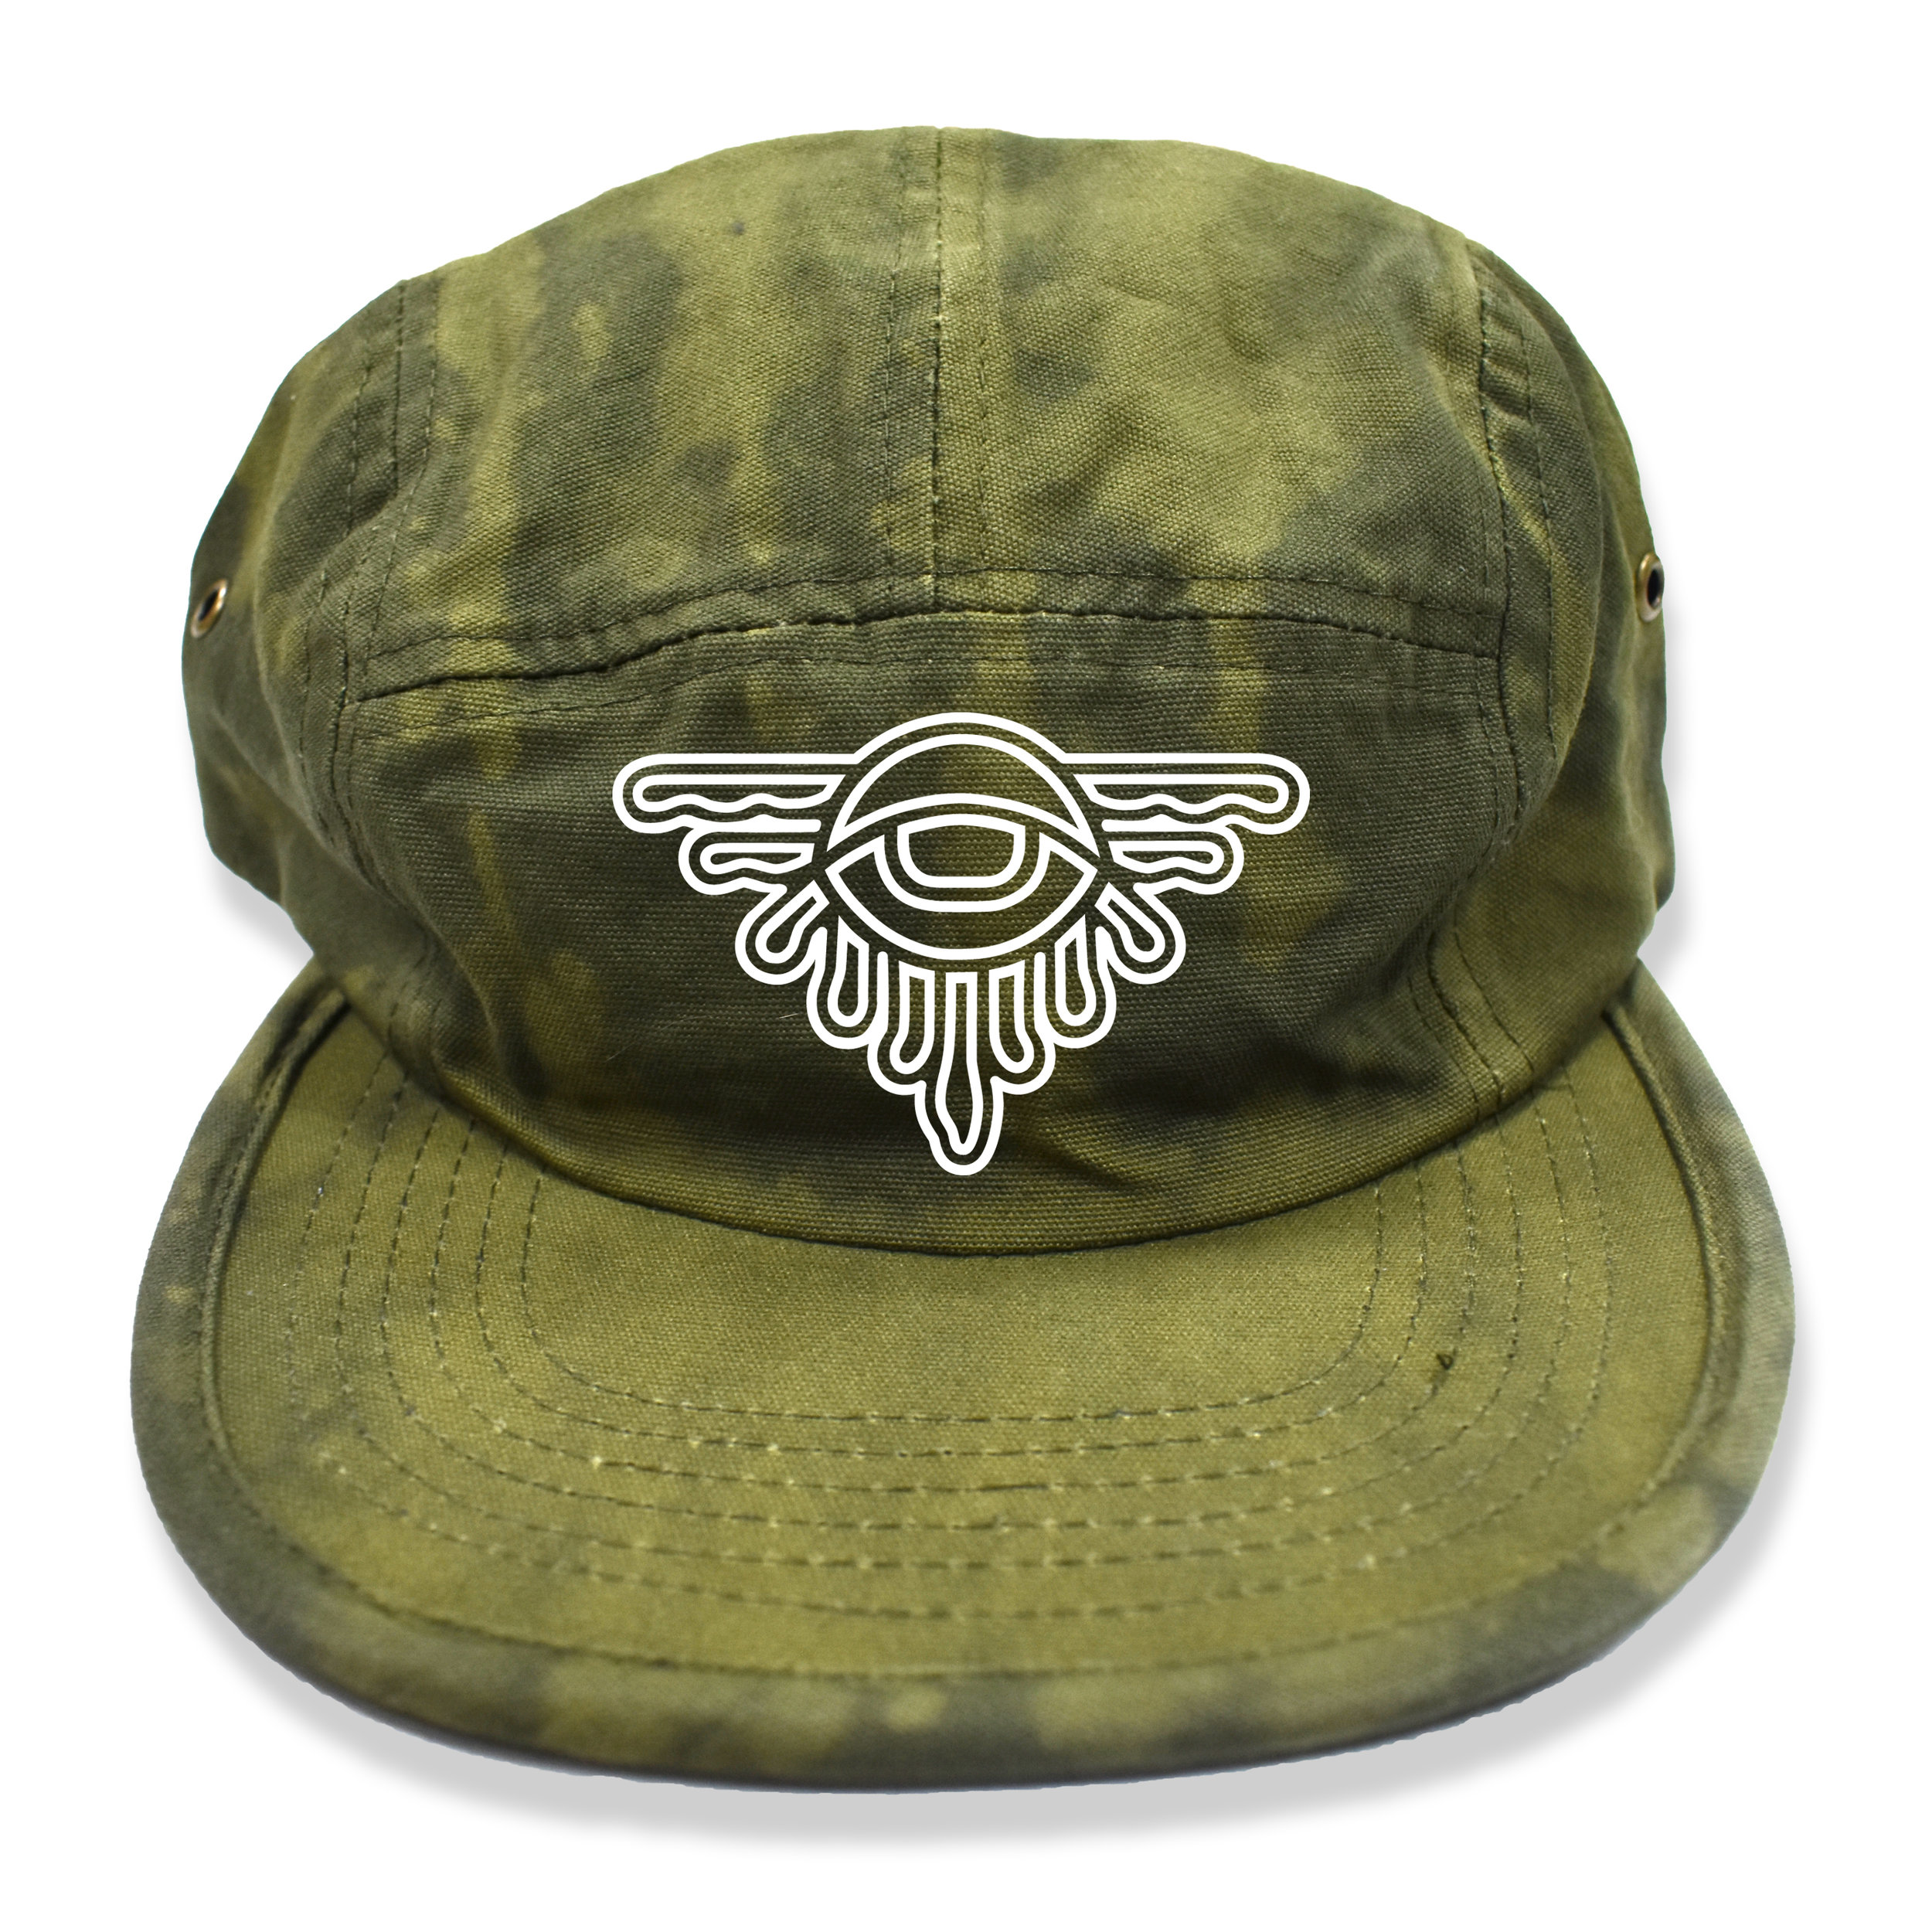 Rhialize-Dripped-Eye-Bleach-Olive-Green-5panel-Hat.jpg